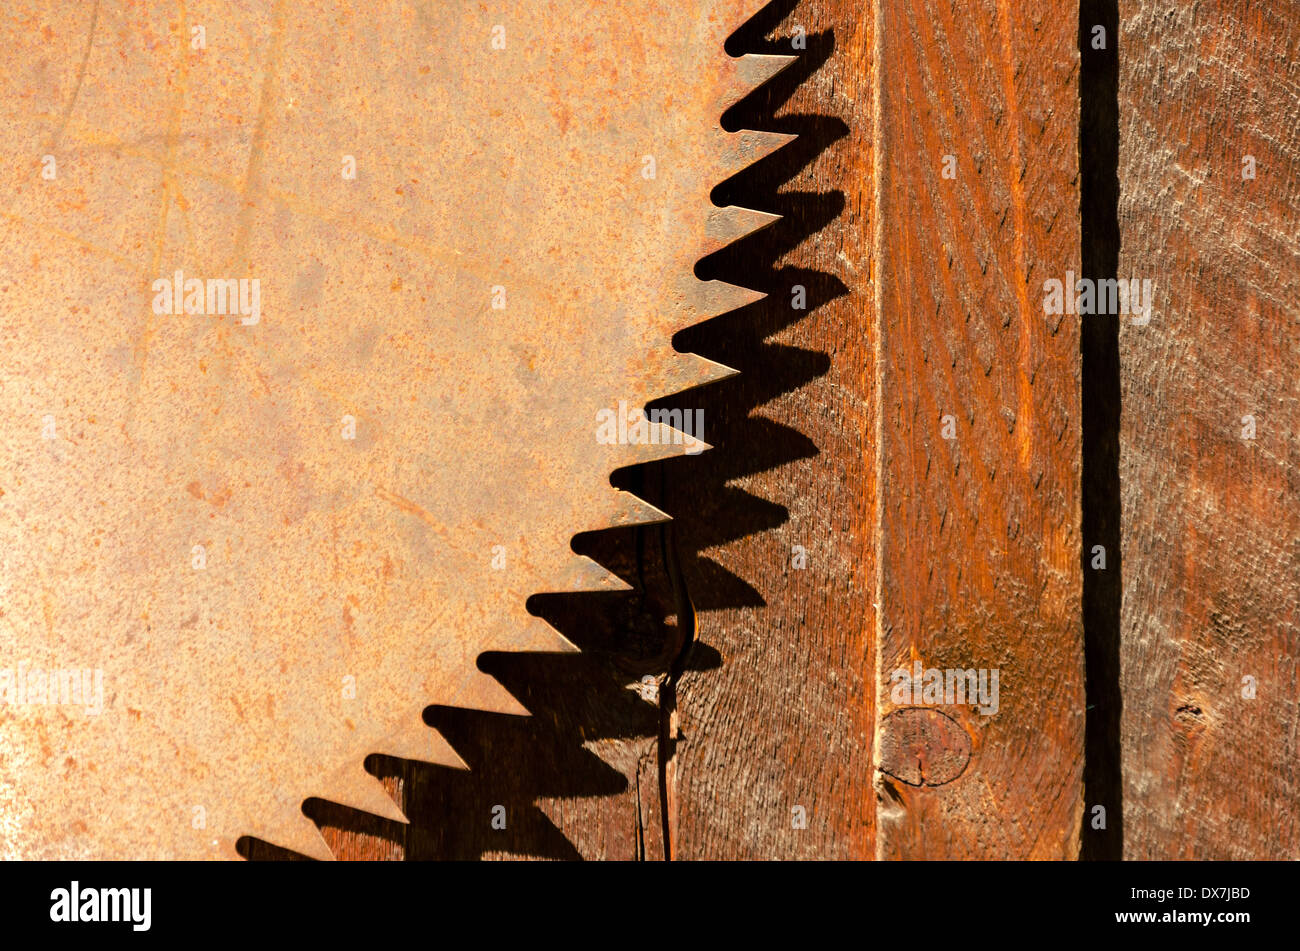 Rusted blade of an old circular saw - Stock Image